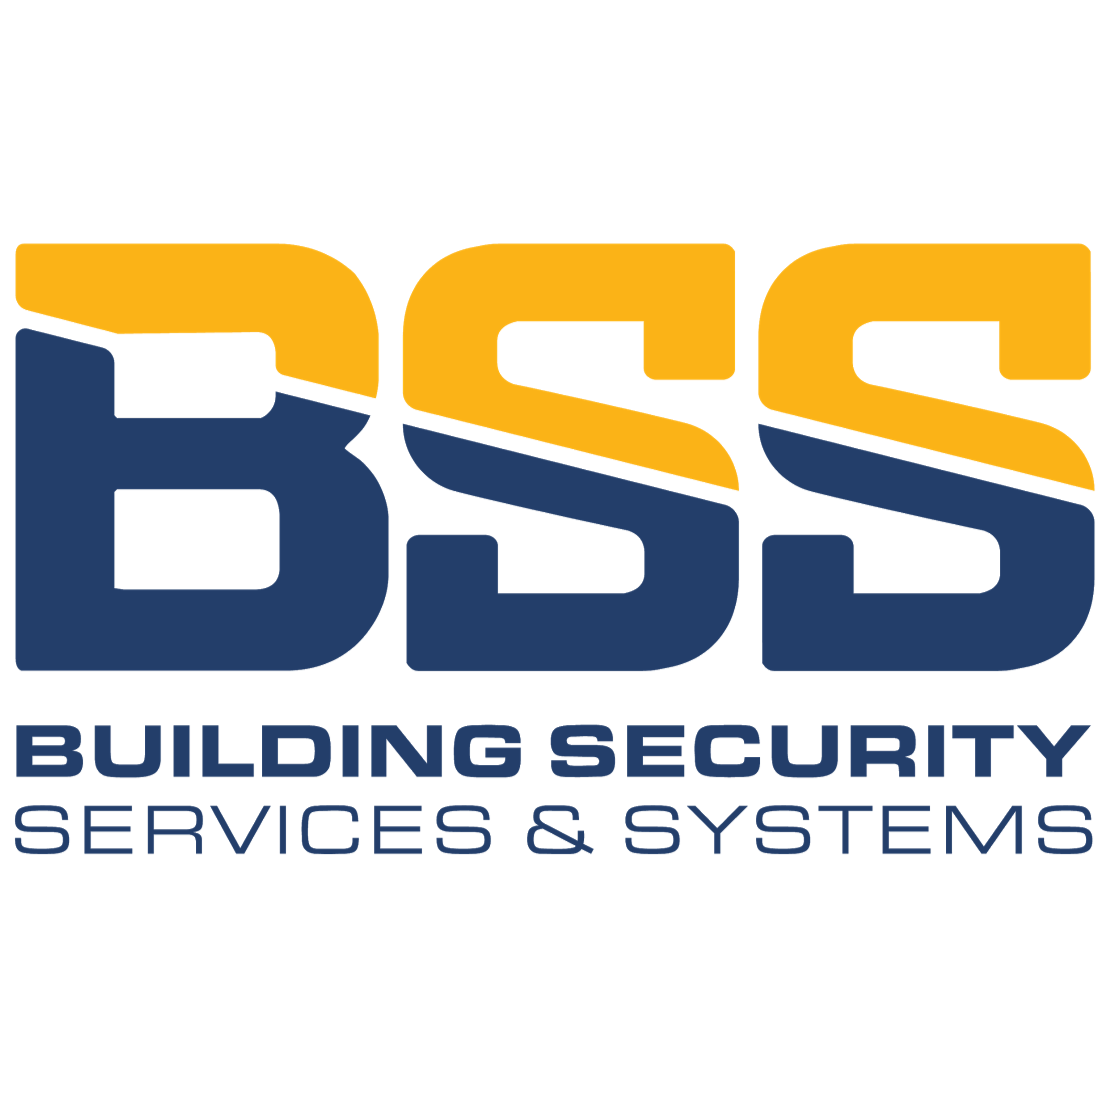 Building Security Services of New York